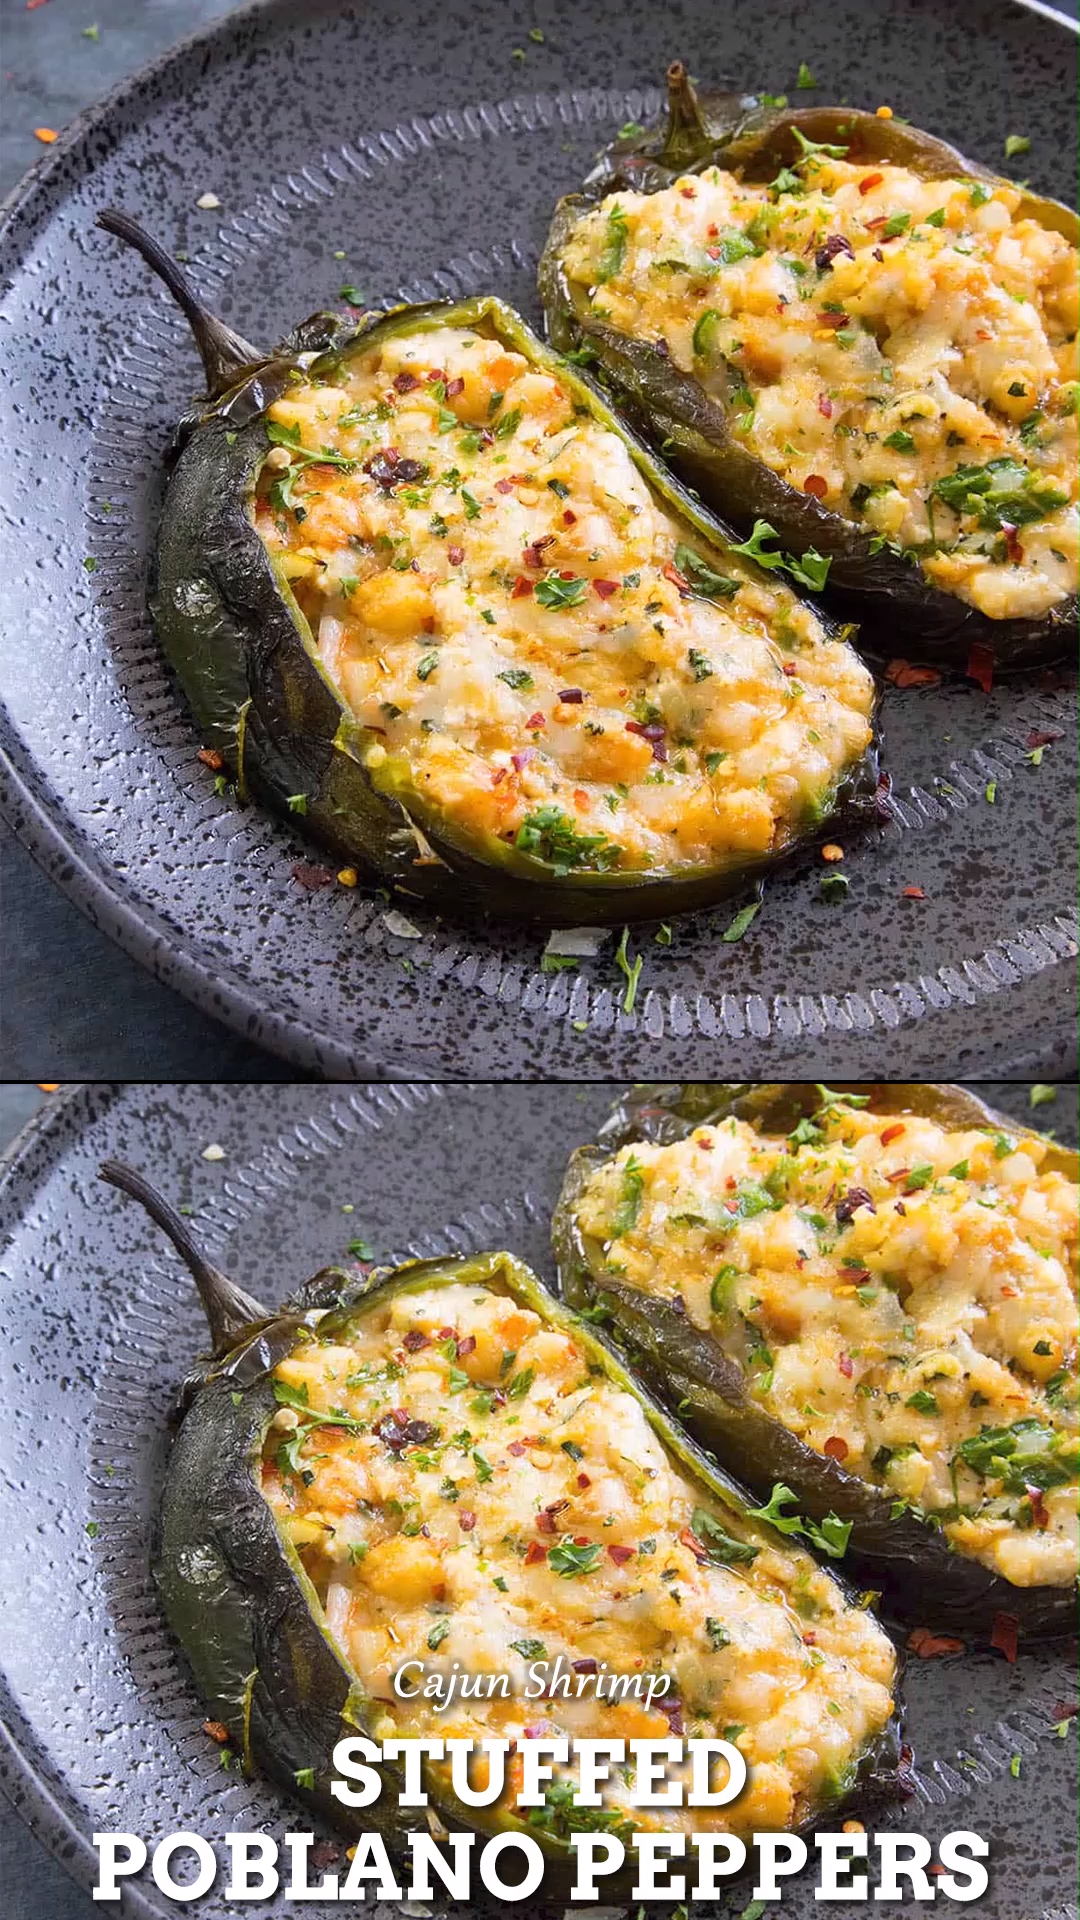 Cajun Shrimp Stuffed Poblano Peppers